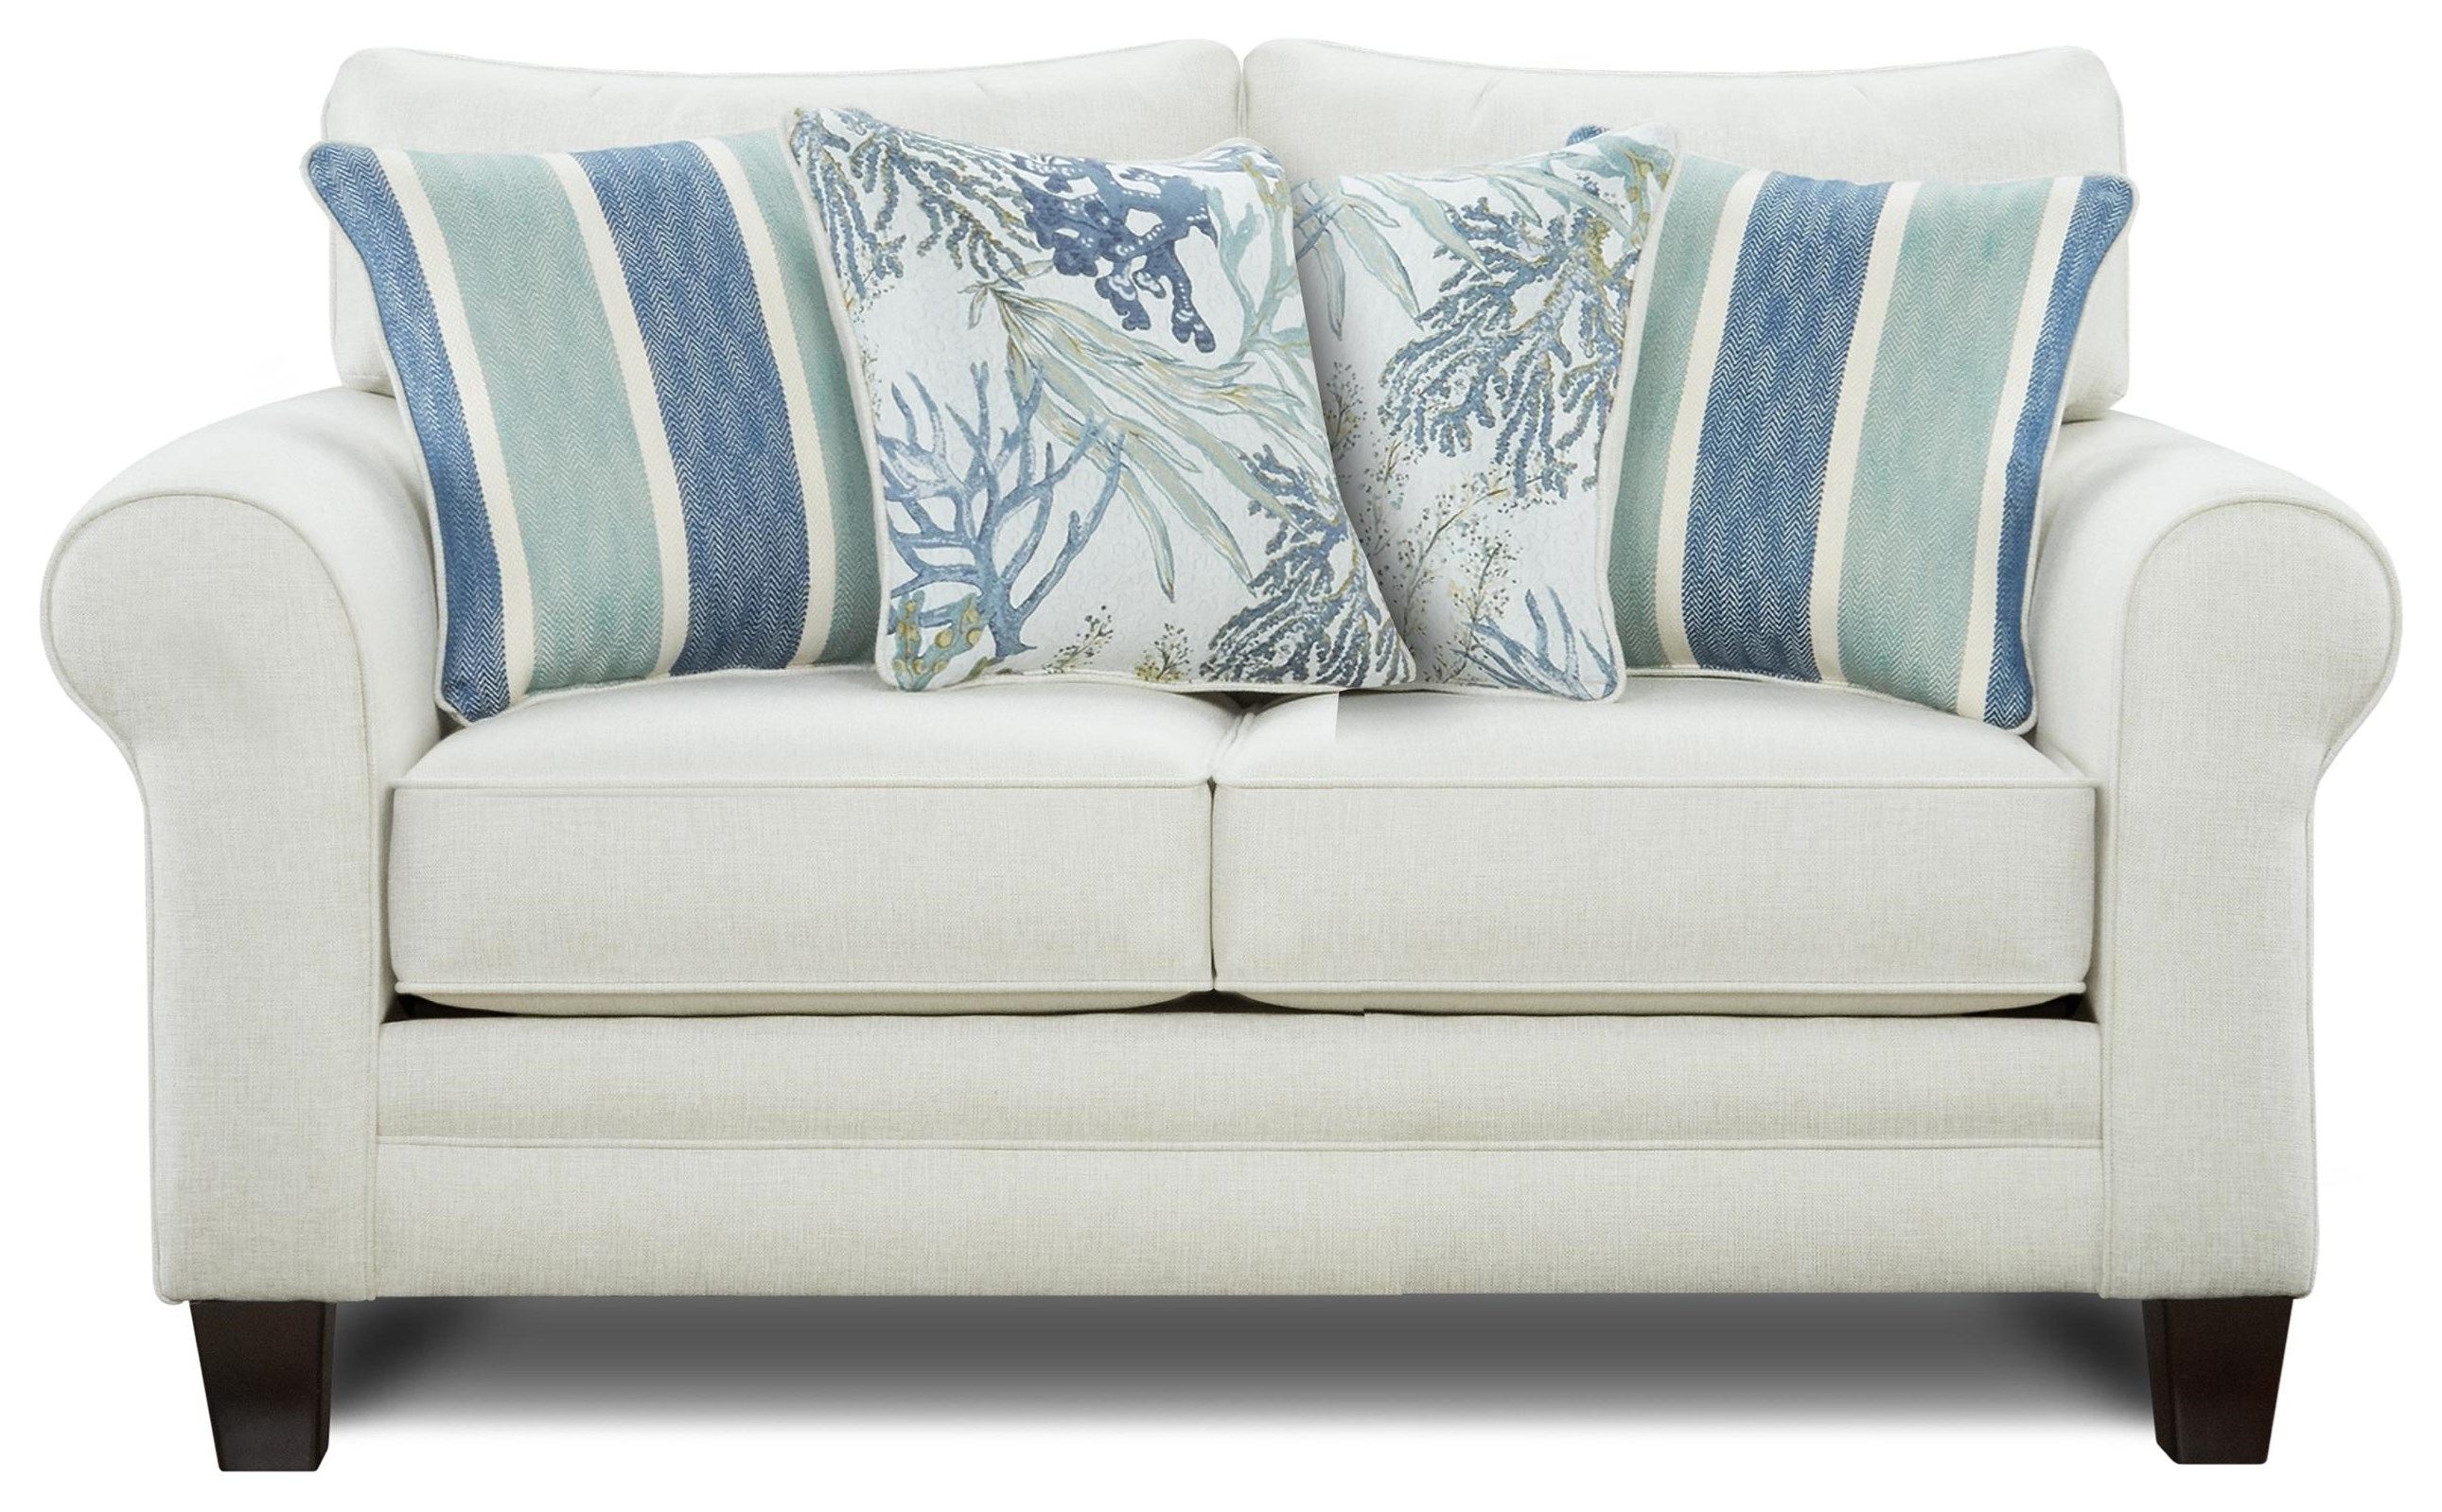 Loveseat w/ Accent Pillows